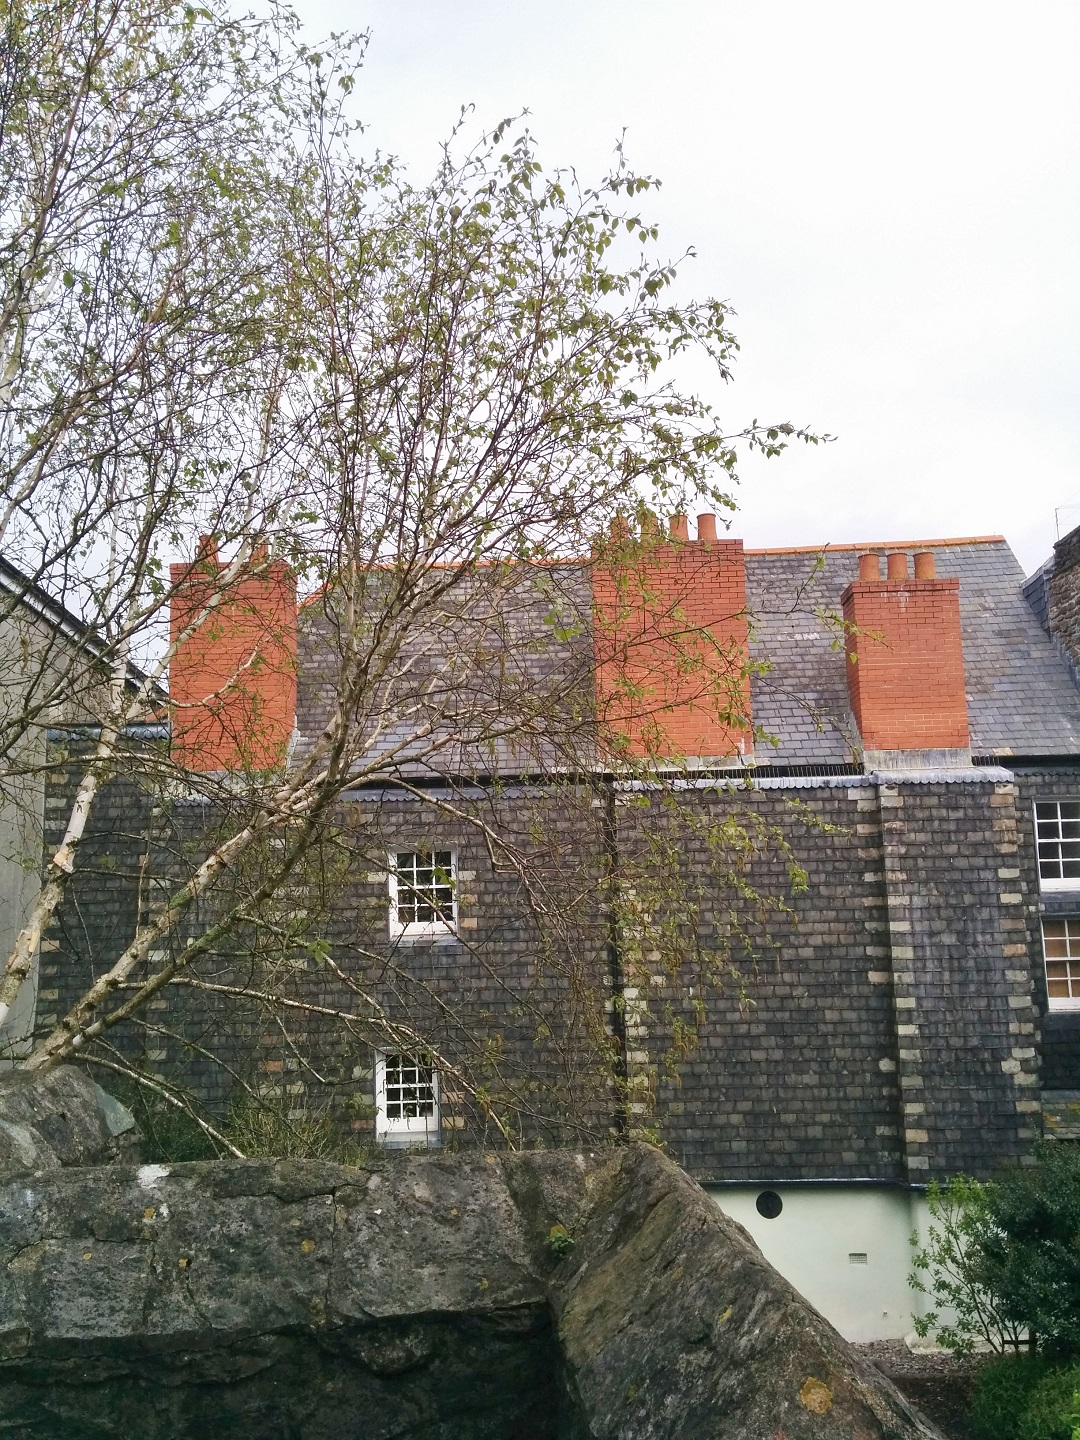 elizabethan-gardens-plymouth-slate-fronted-house